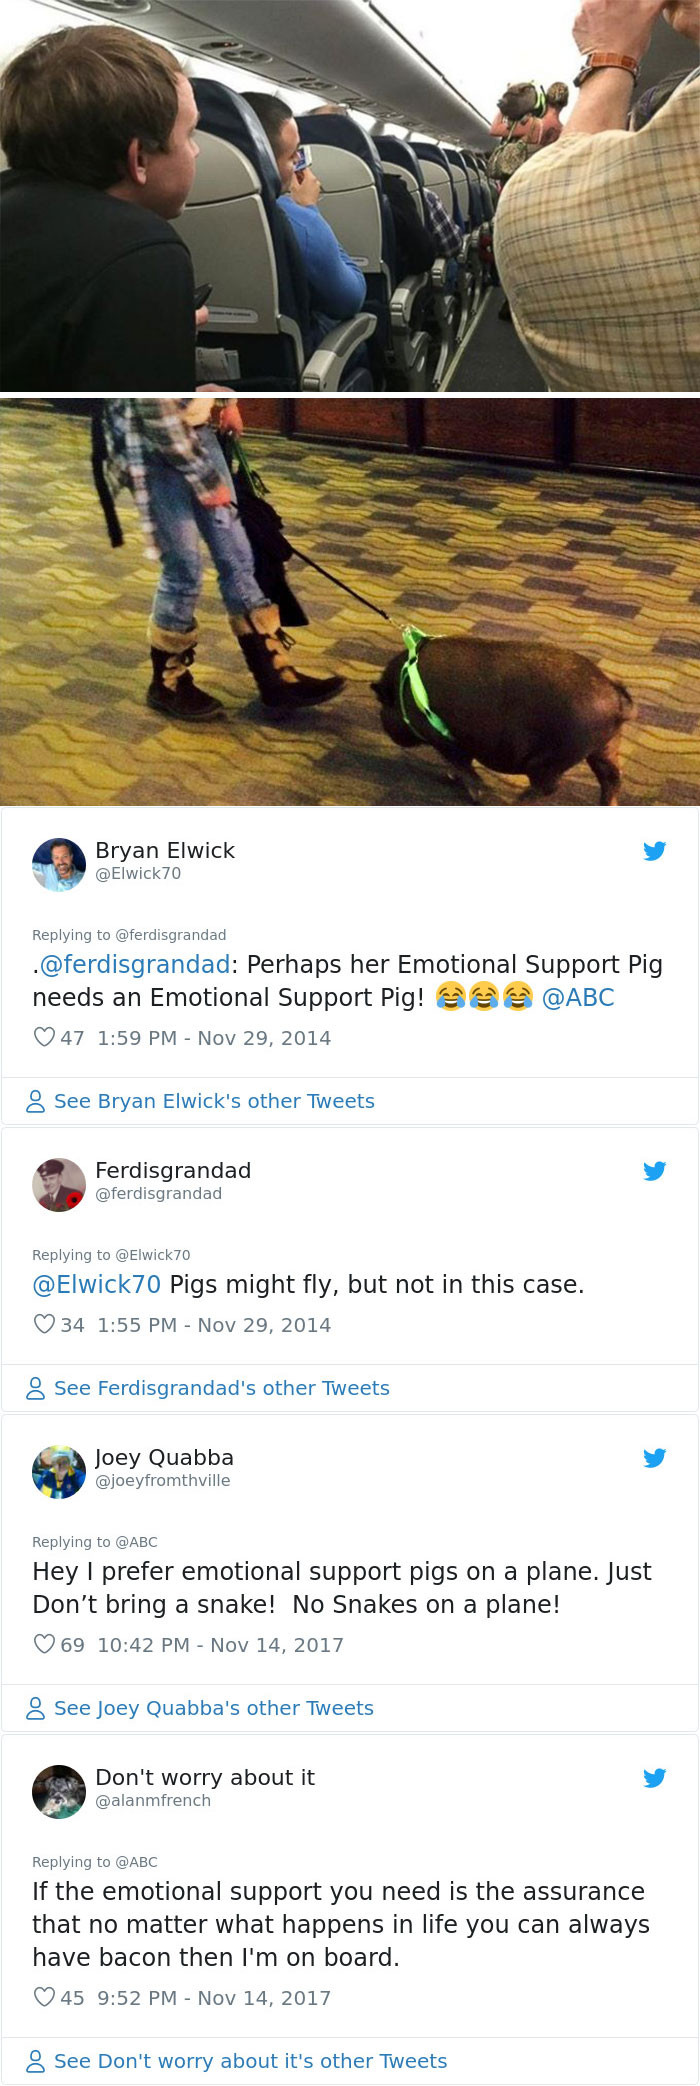 3. This emotional support pig was kicked off a flight because he was being